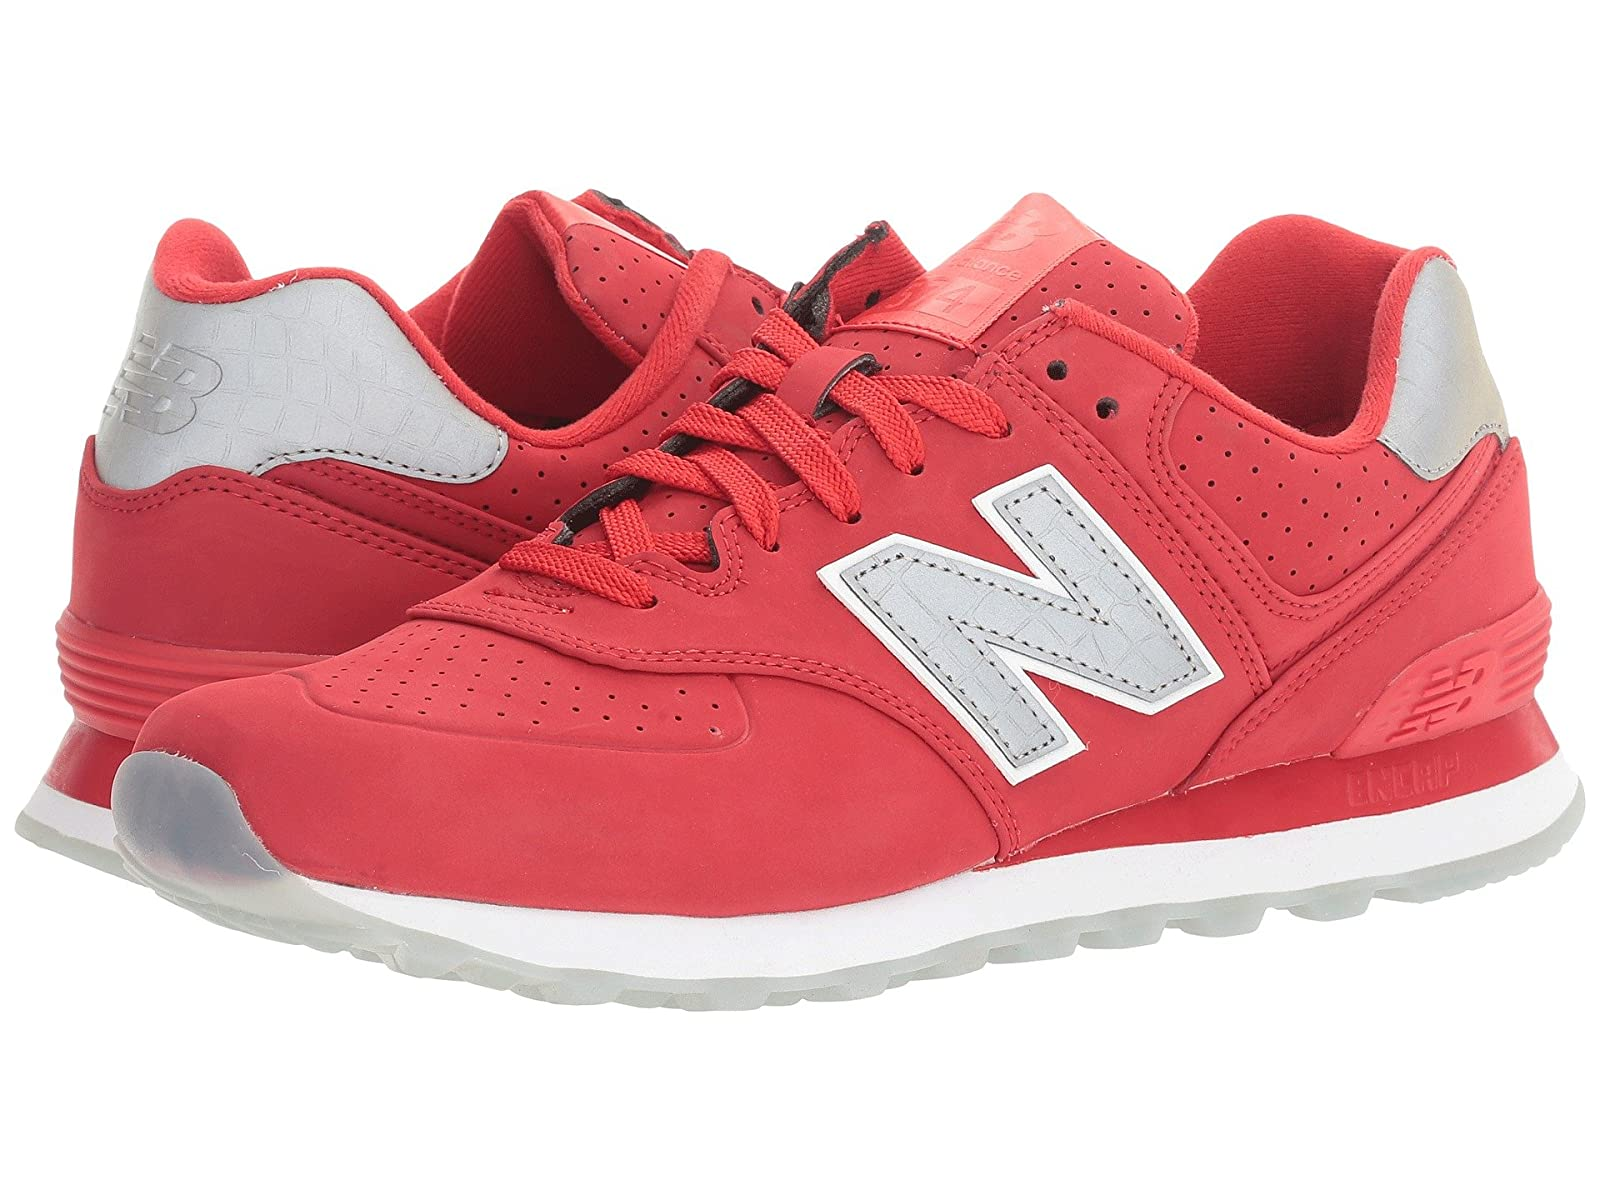 New Balance ML574v1Cheap and distinctive eye-catching shoes